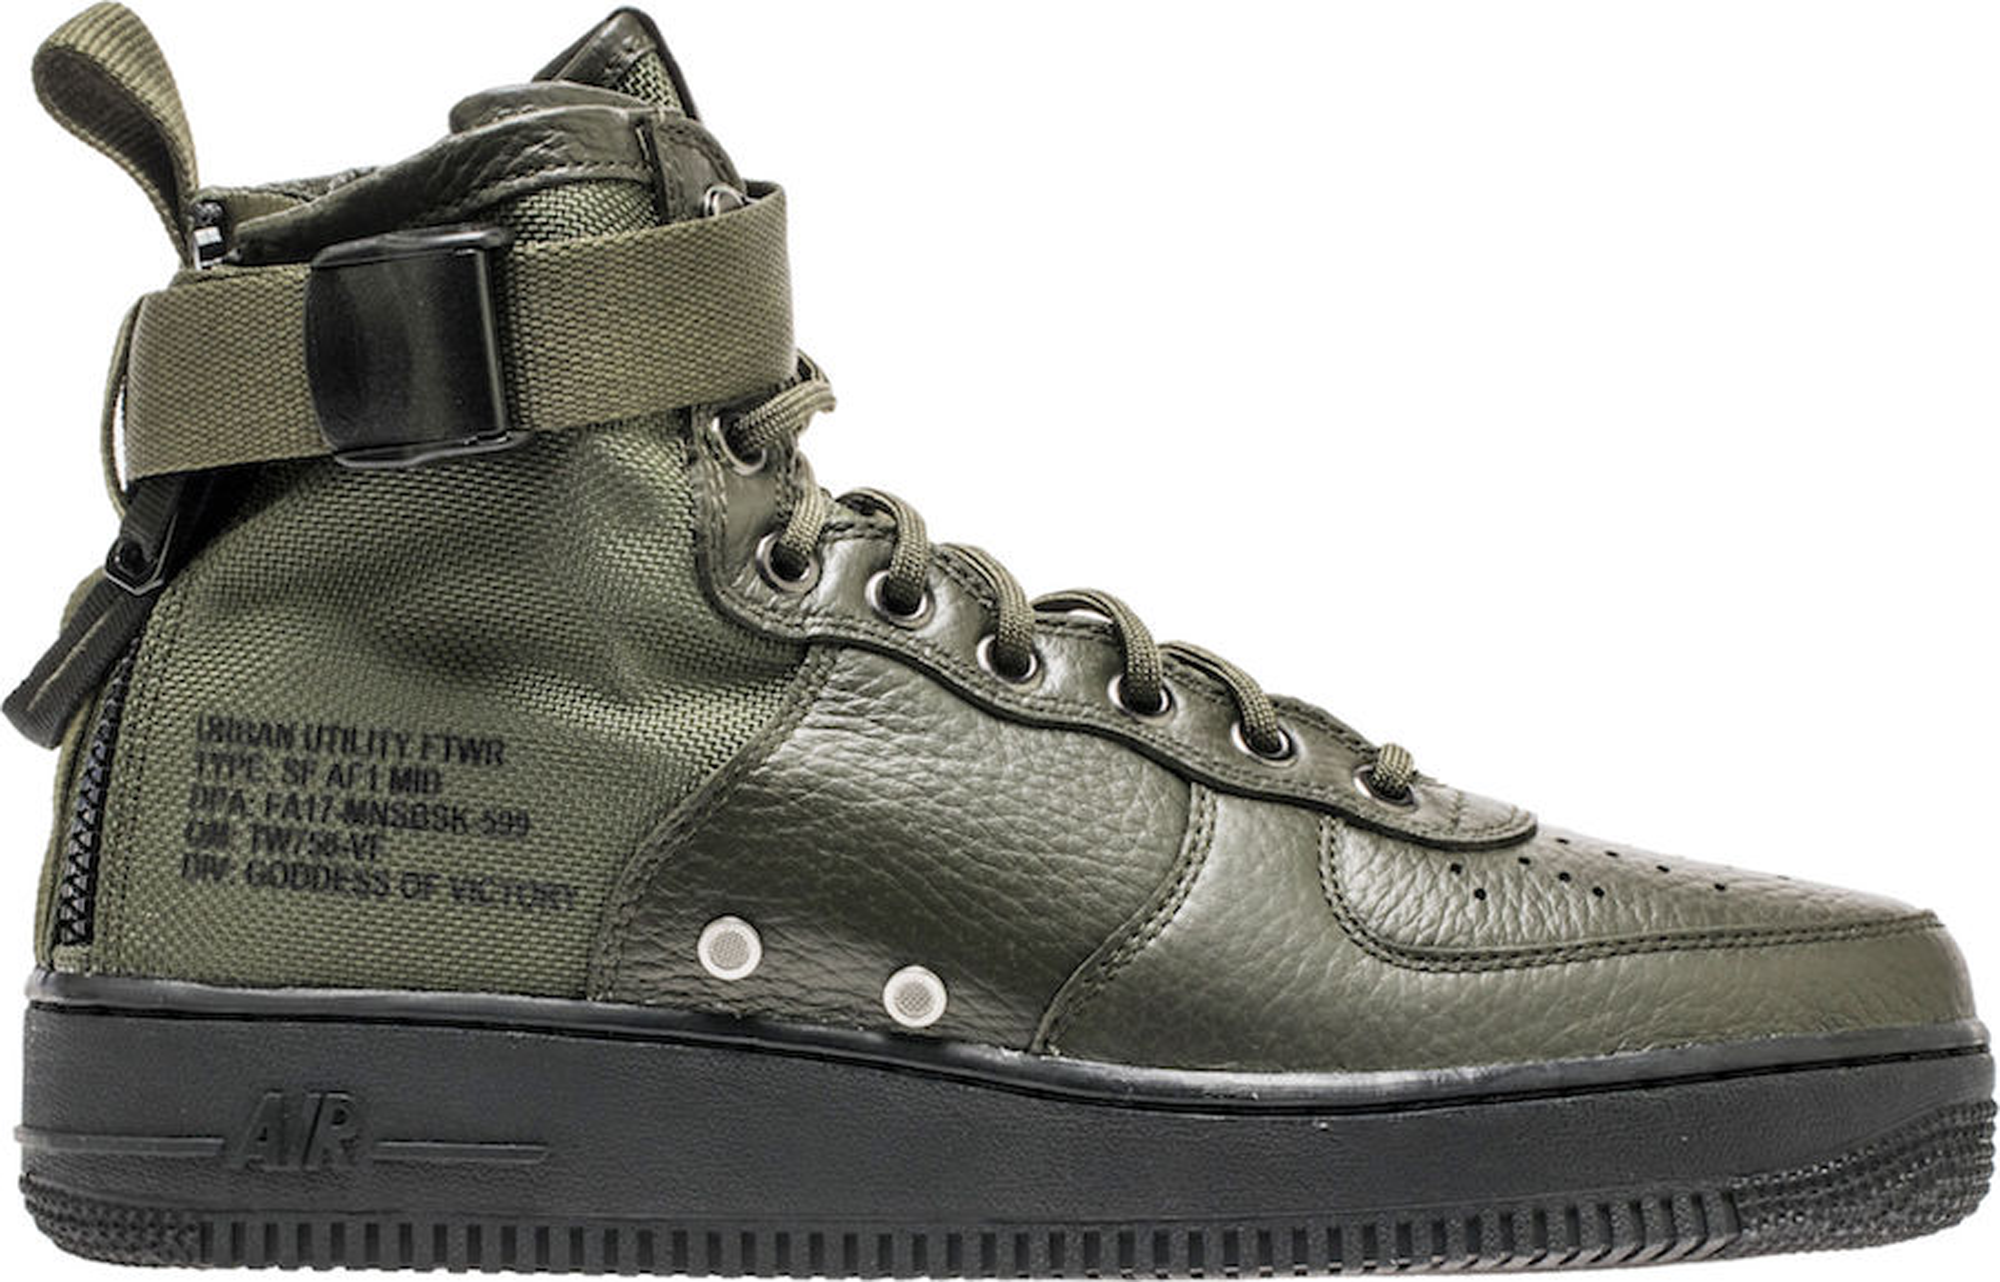 ... blackblack cargo khaki 2017 for sale bd14e 5220f  get release date  profile 917753 002 nike sf air force 1 mid qs aa7345 001 tiger af5249fe3